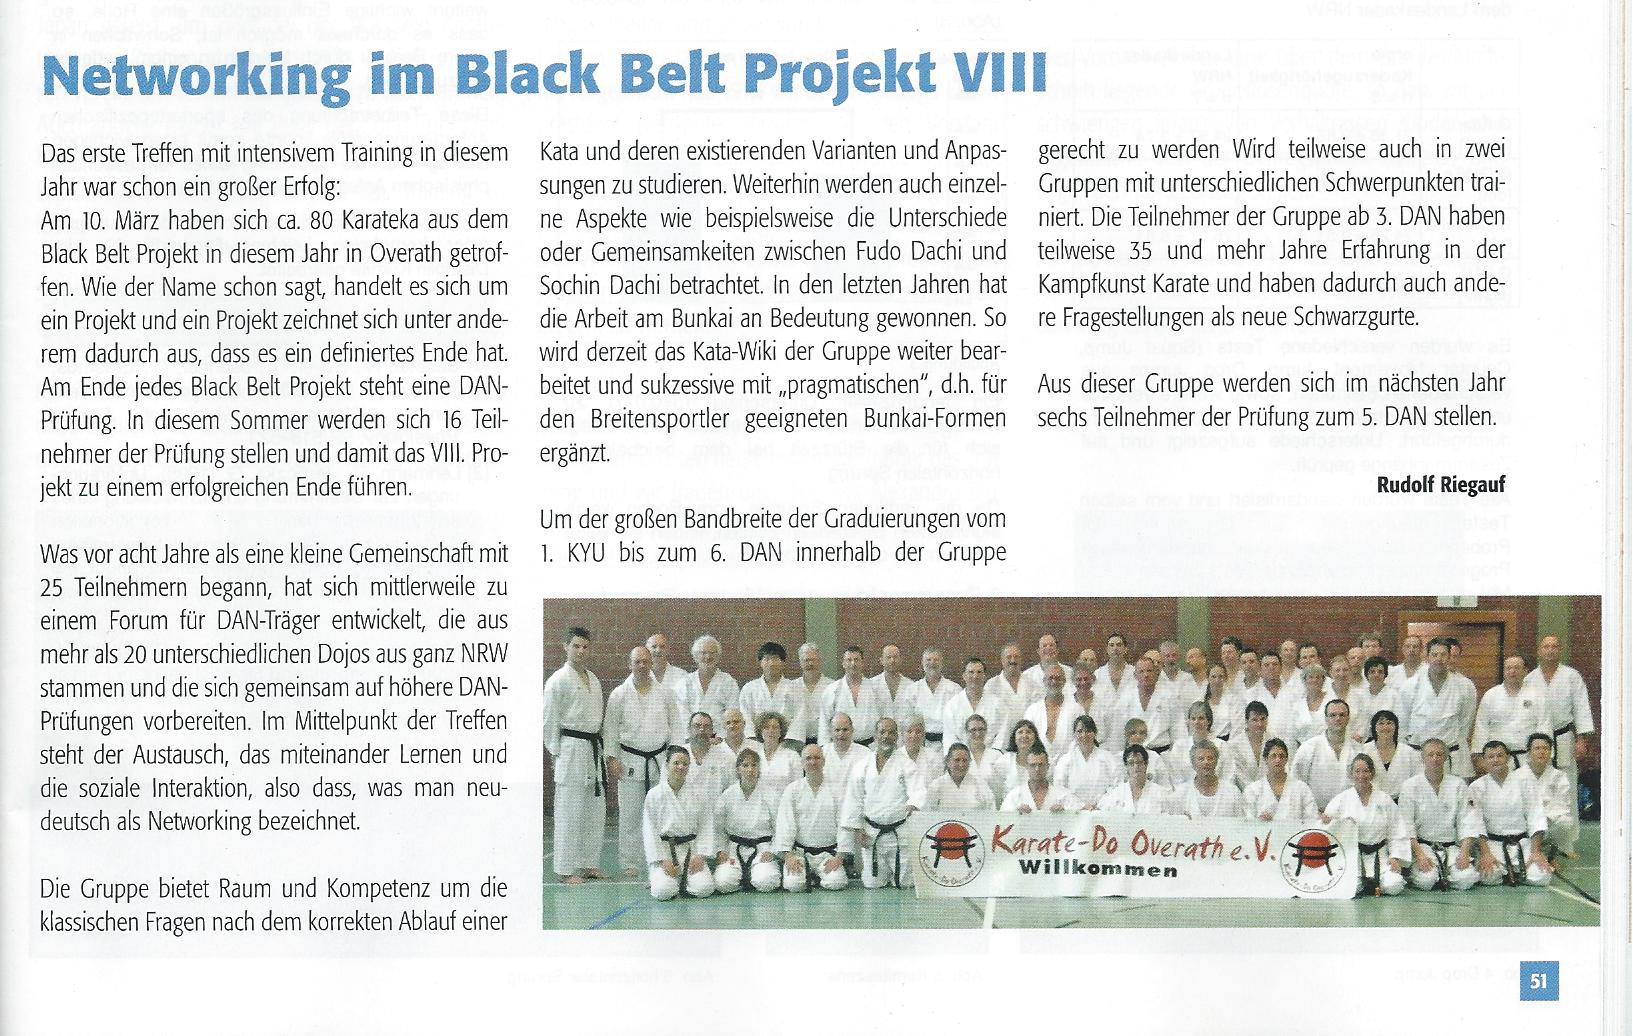 Networking im Black Belt Projekt VIII